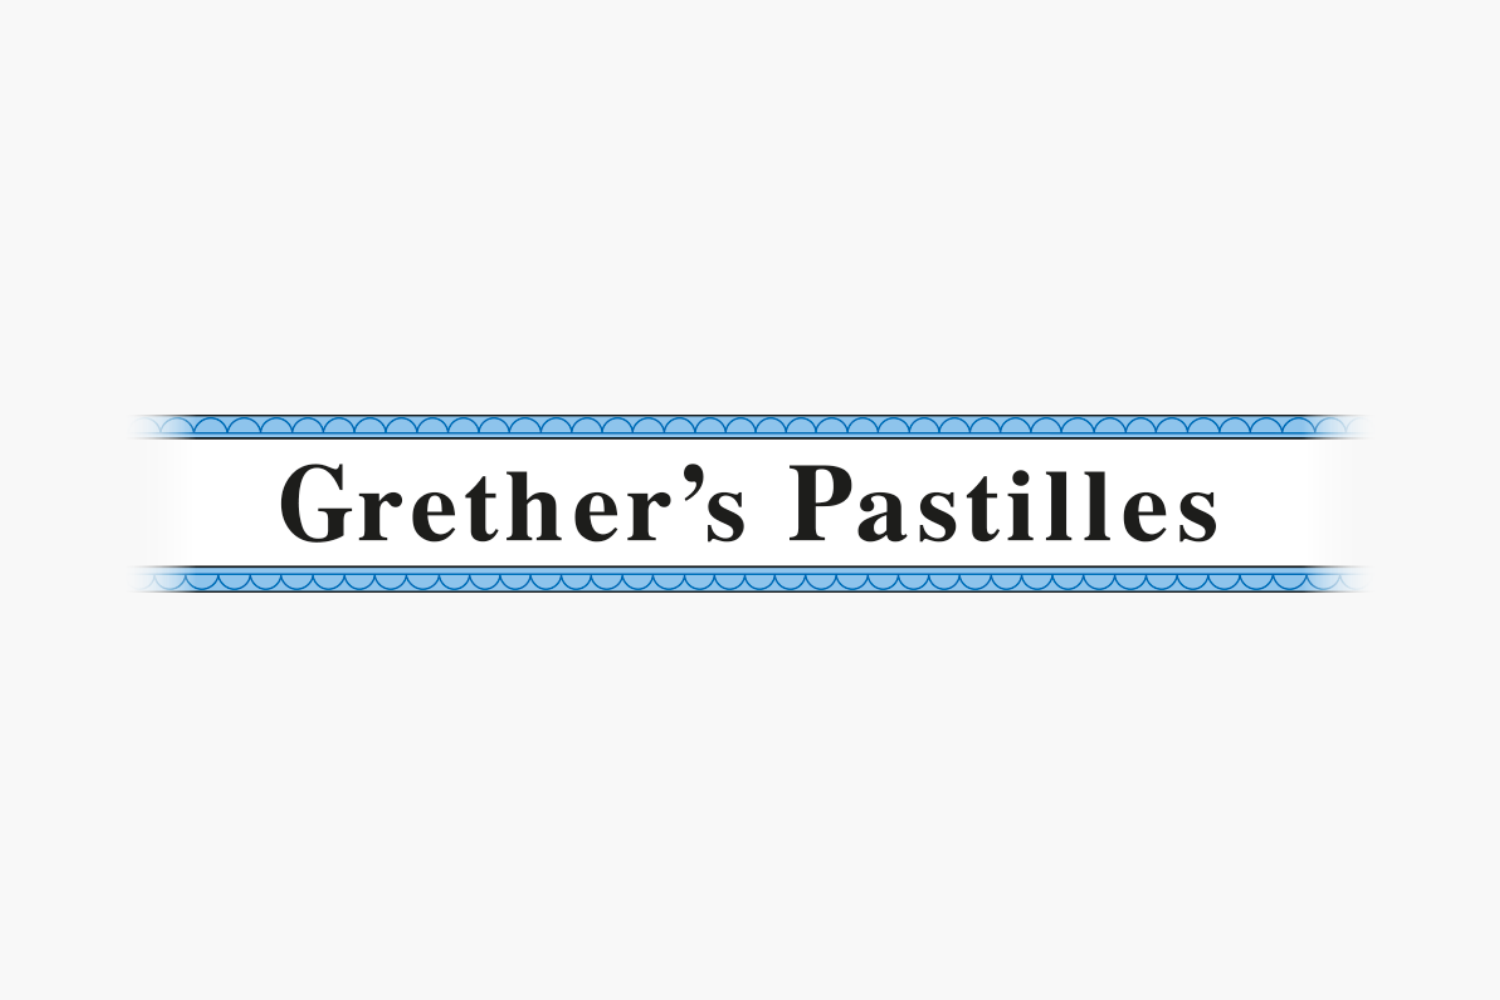 Social Media Marketing - We manage the social media campaign and its implementation on Facebook for the swiss brand Grether's Pastilles.